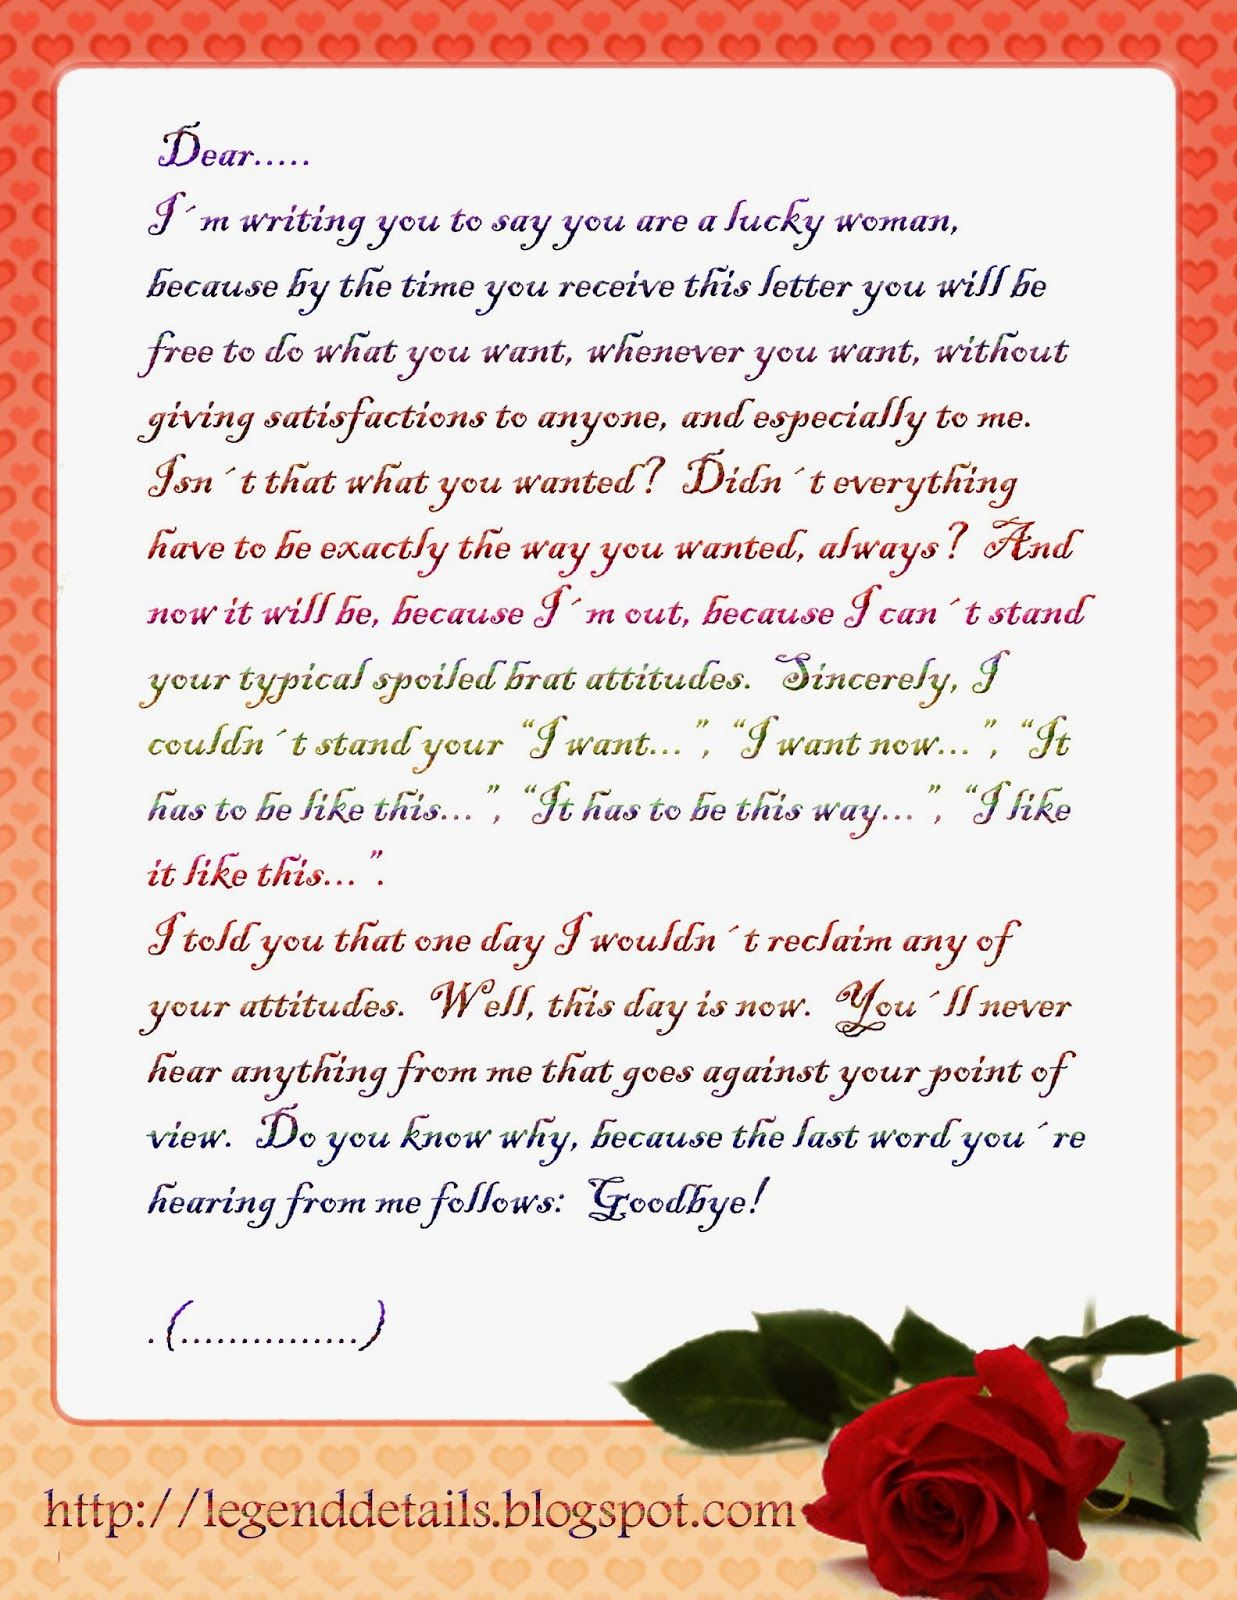 collections of hundreds of free sample love letter from all over the world